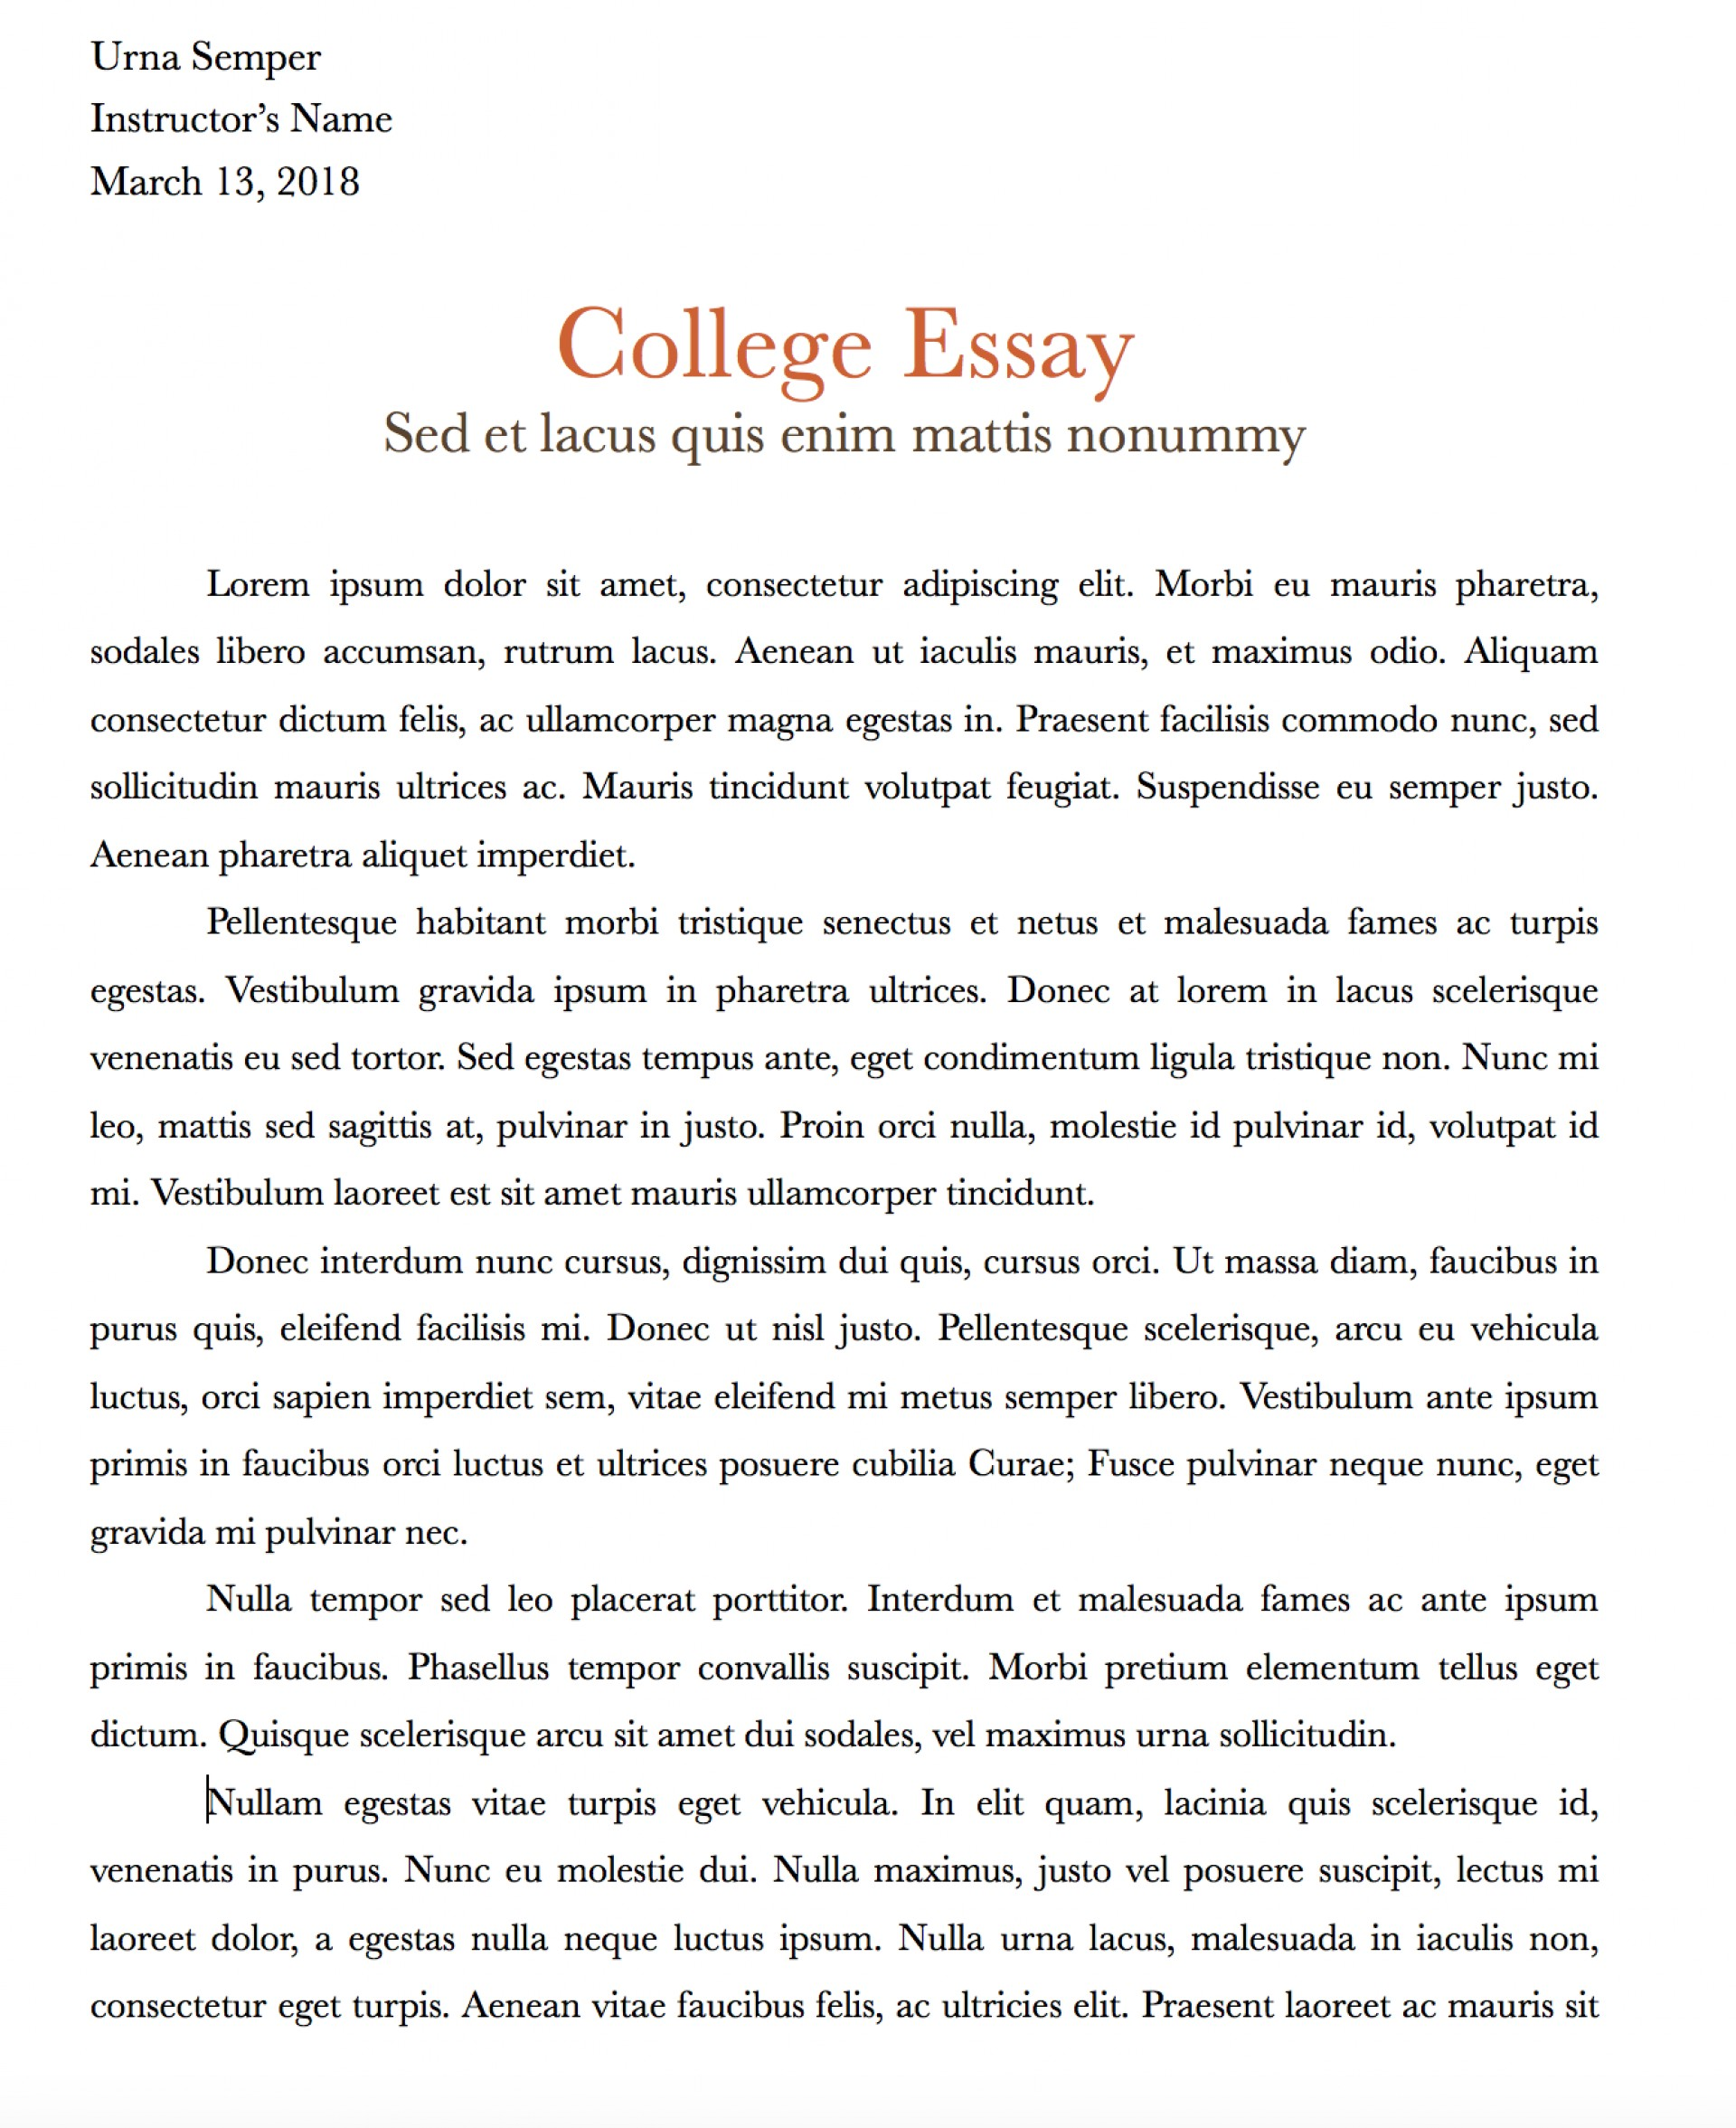 001 What Makes You Unique Essay Example How To Write An Interesting And Captivating College Application Ctwrvkoshcimzkxyhyl8 With Parag Sensational Examples Mba Question 1920